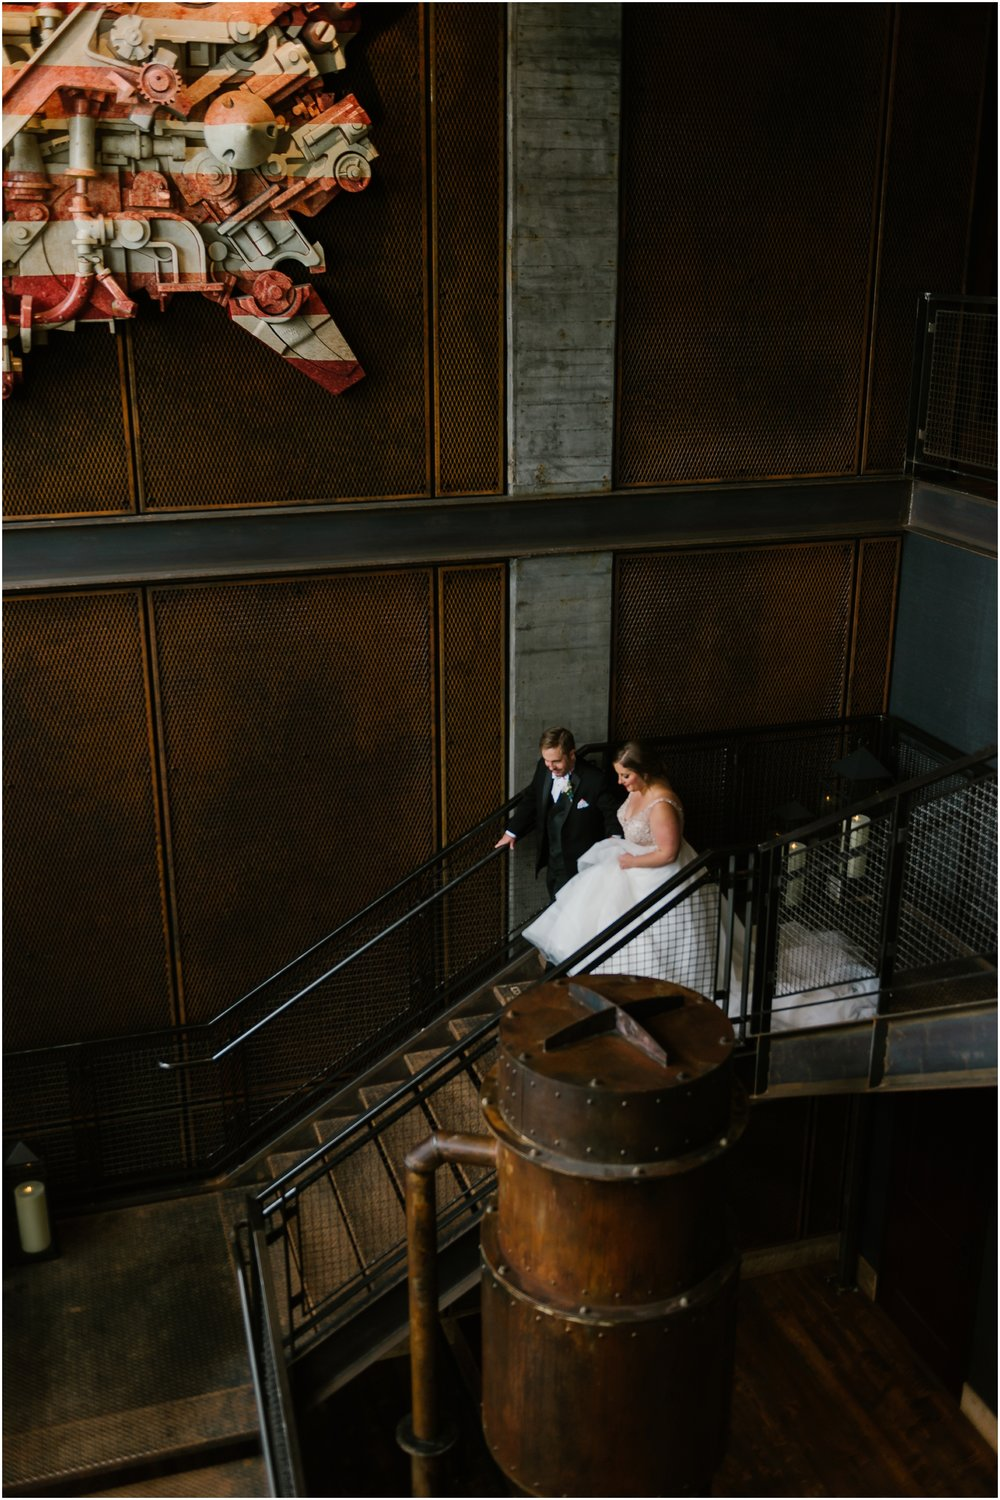 Rebecca_Shehorn_Photography_Indianapolis_Wedding_Photographer_8809.jpg